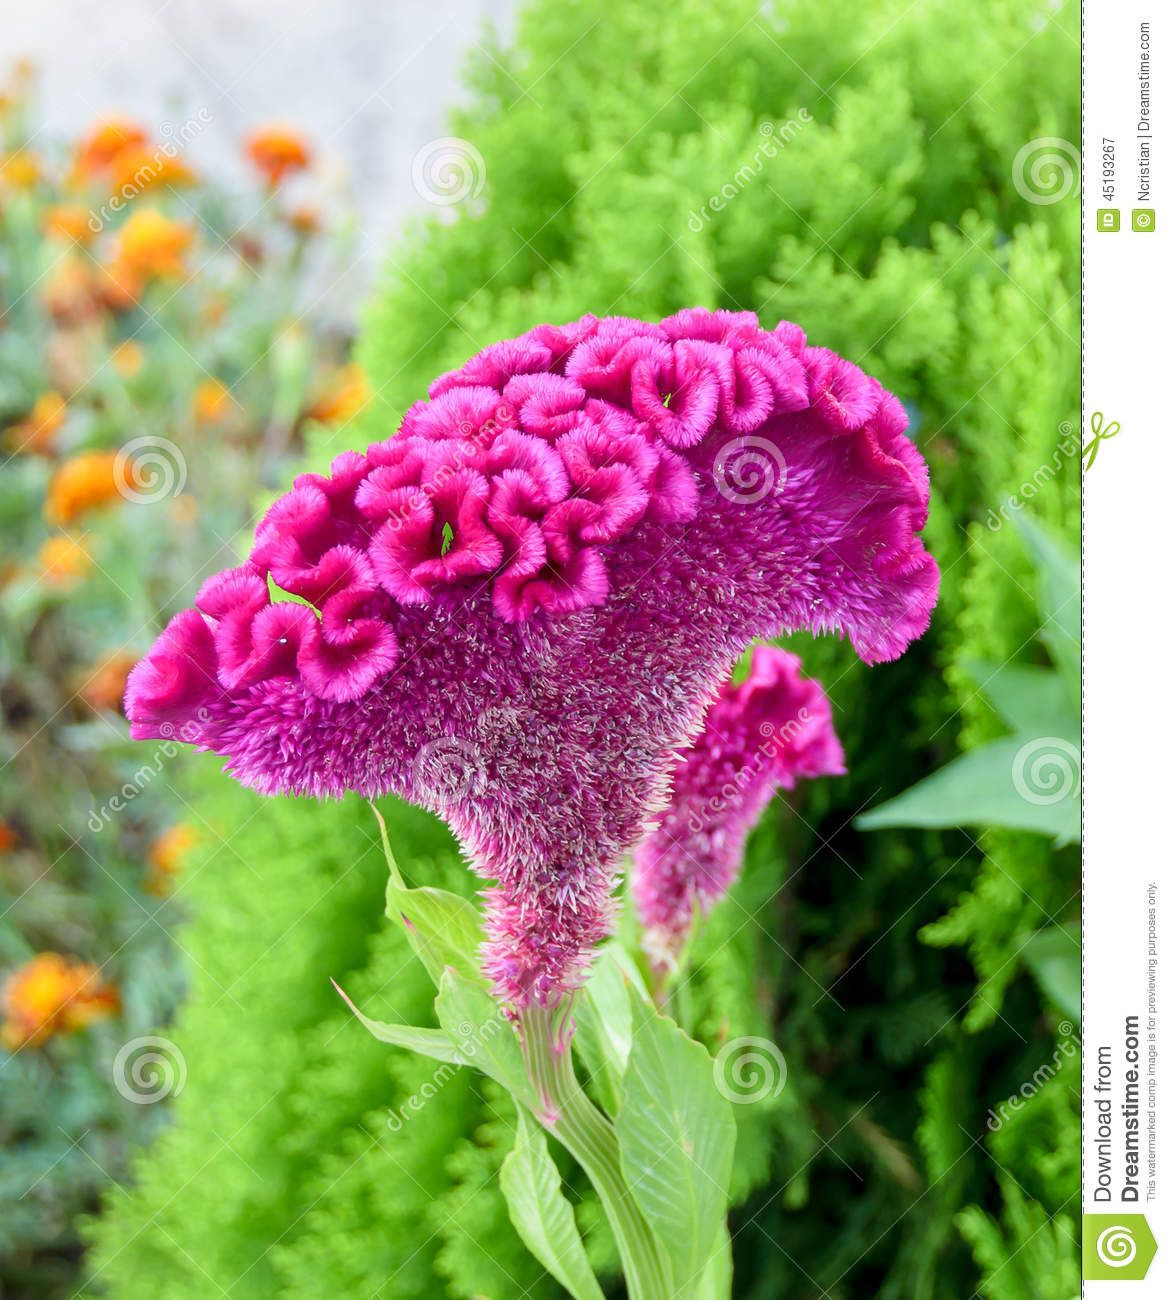 Photo About Celosia Cristata Genus Celosia Commonly Known As Cockscomb It Is Called Chi Kuan In China And Creast Rare Flowers Unique Flowers Amazing Flowers